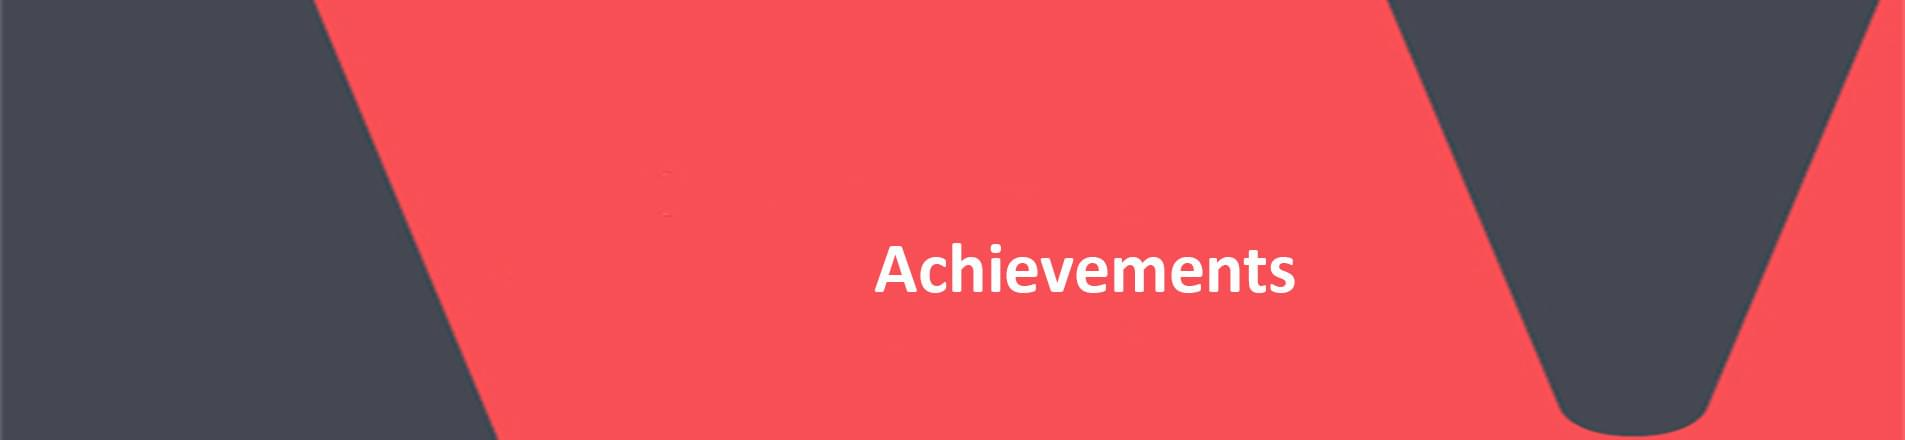 The word 'Achievements' on red VERCIDA background